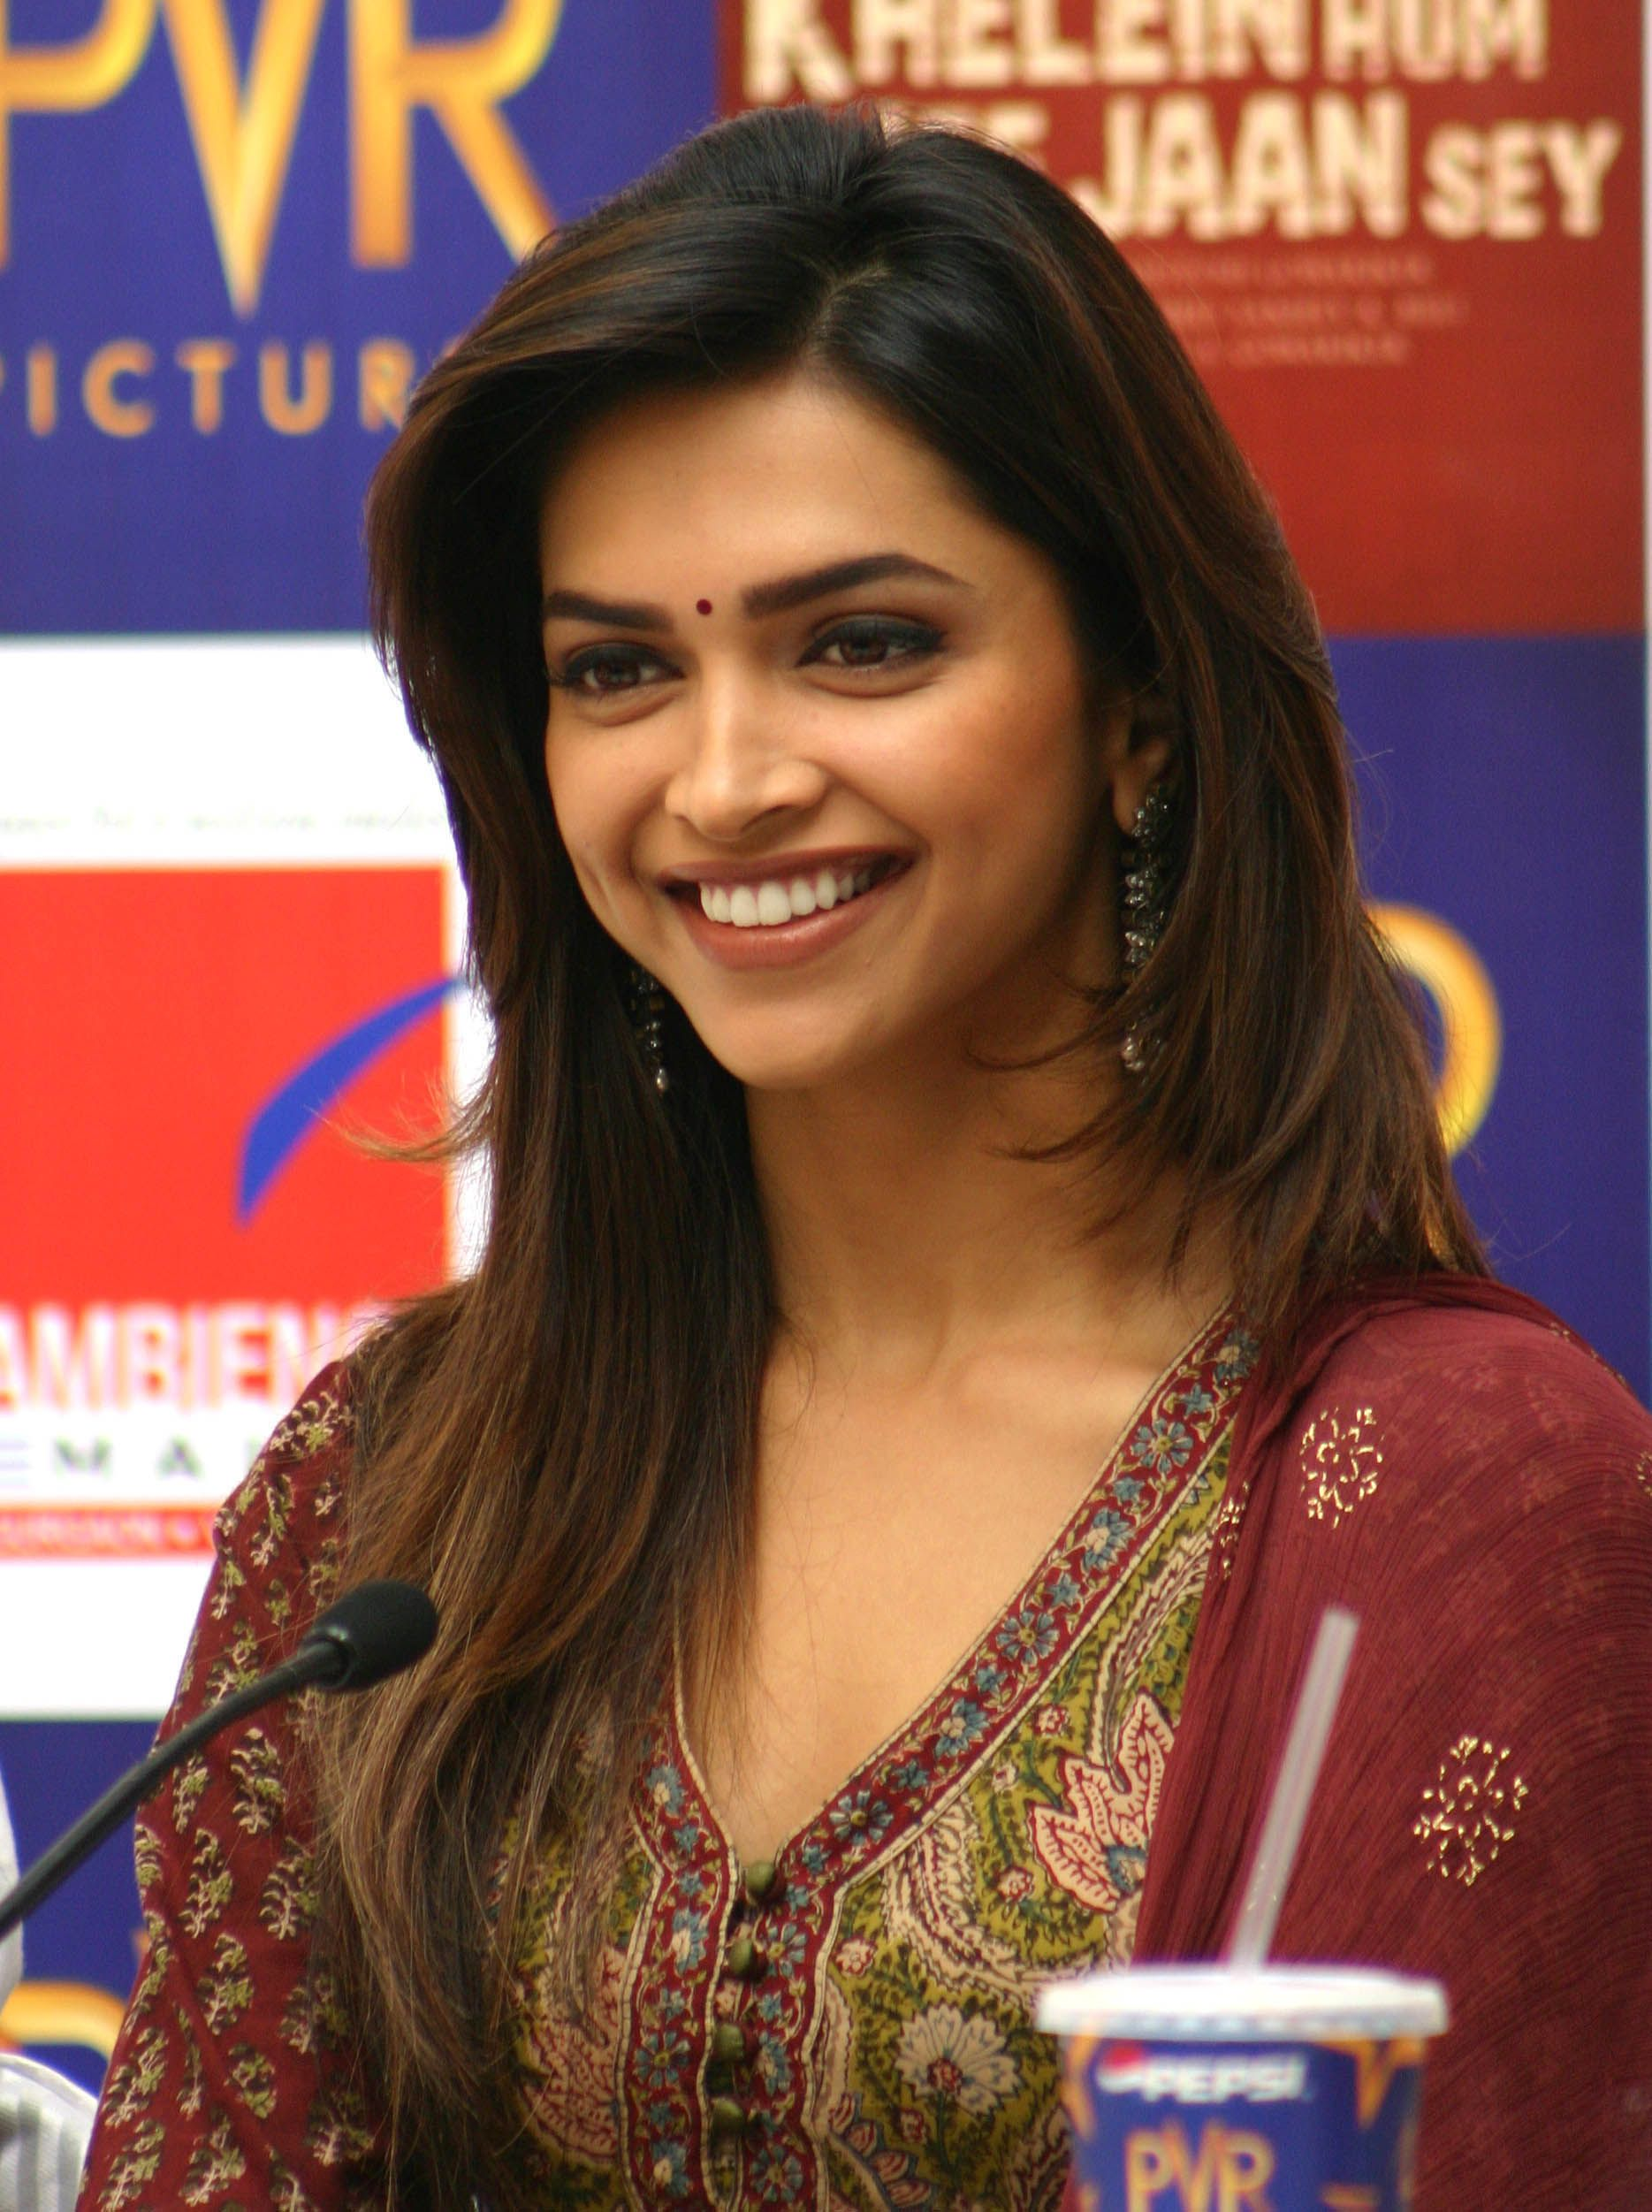 Deepika Padukone (With images) | Bollywood actress ...